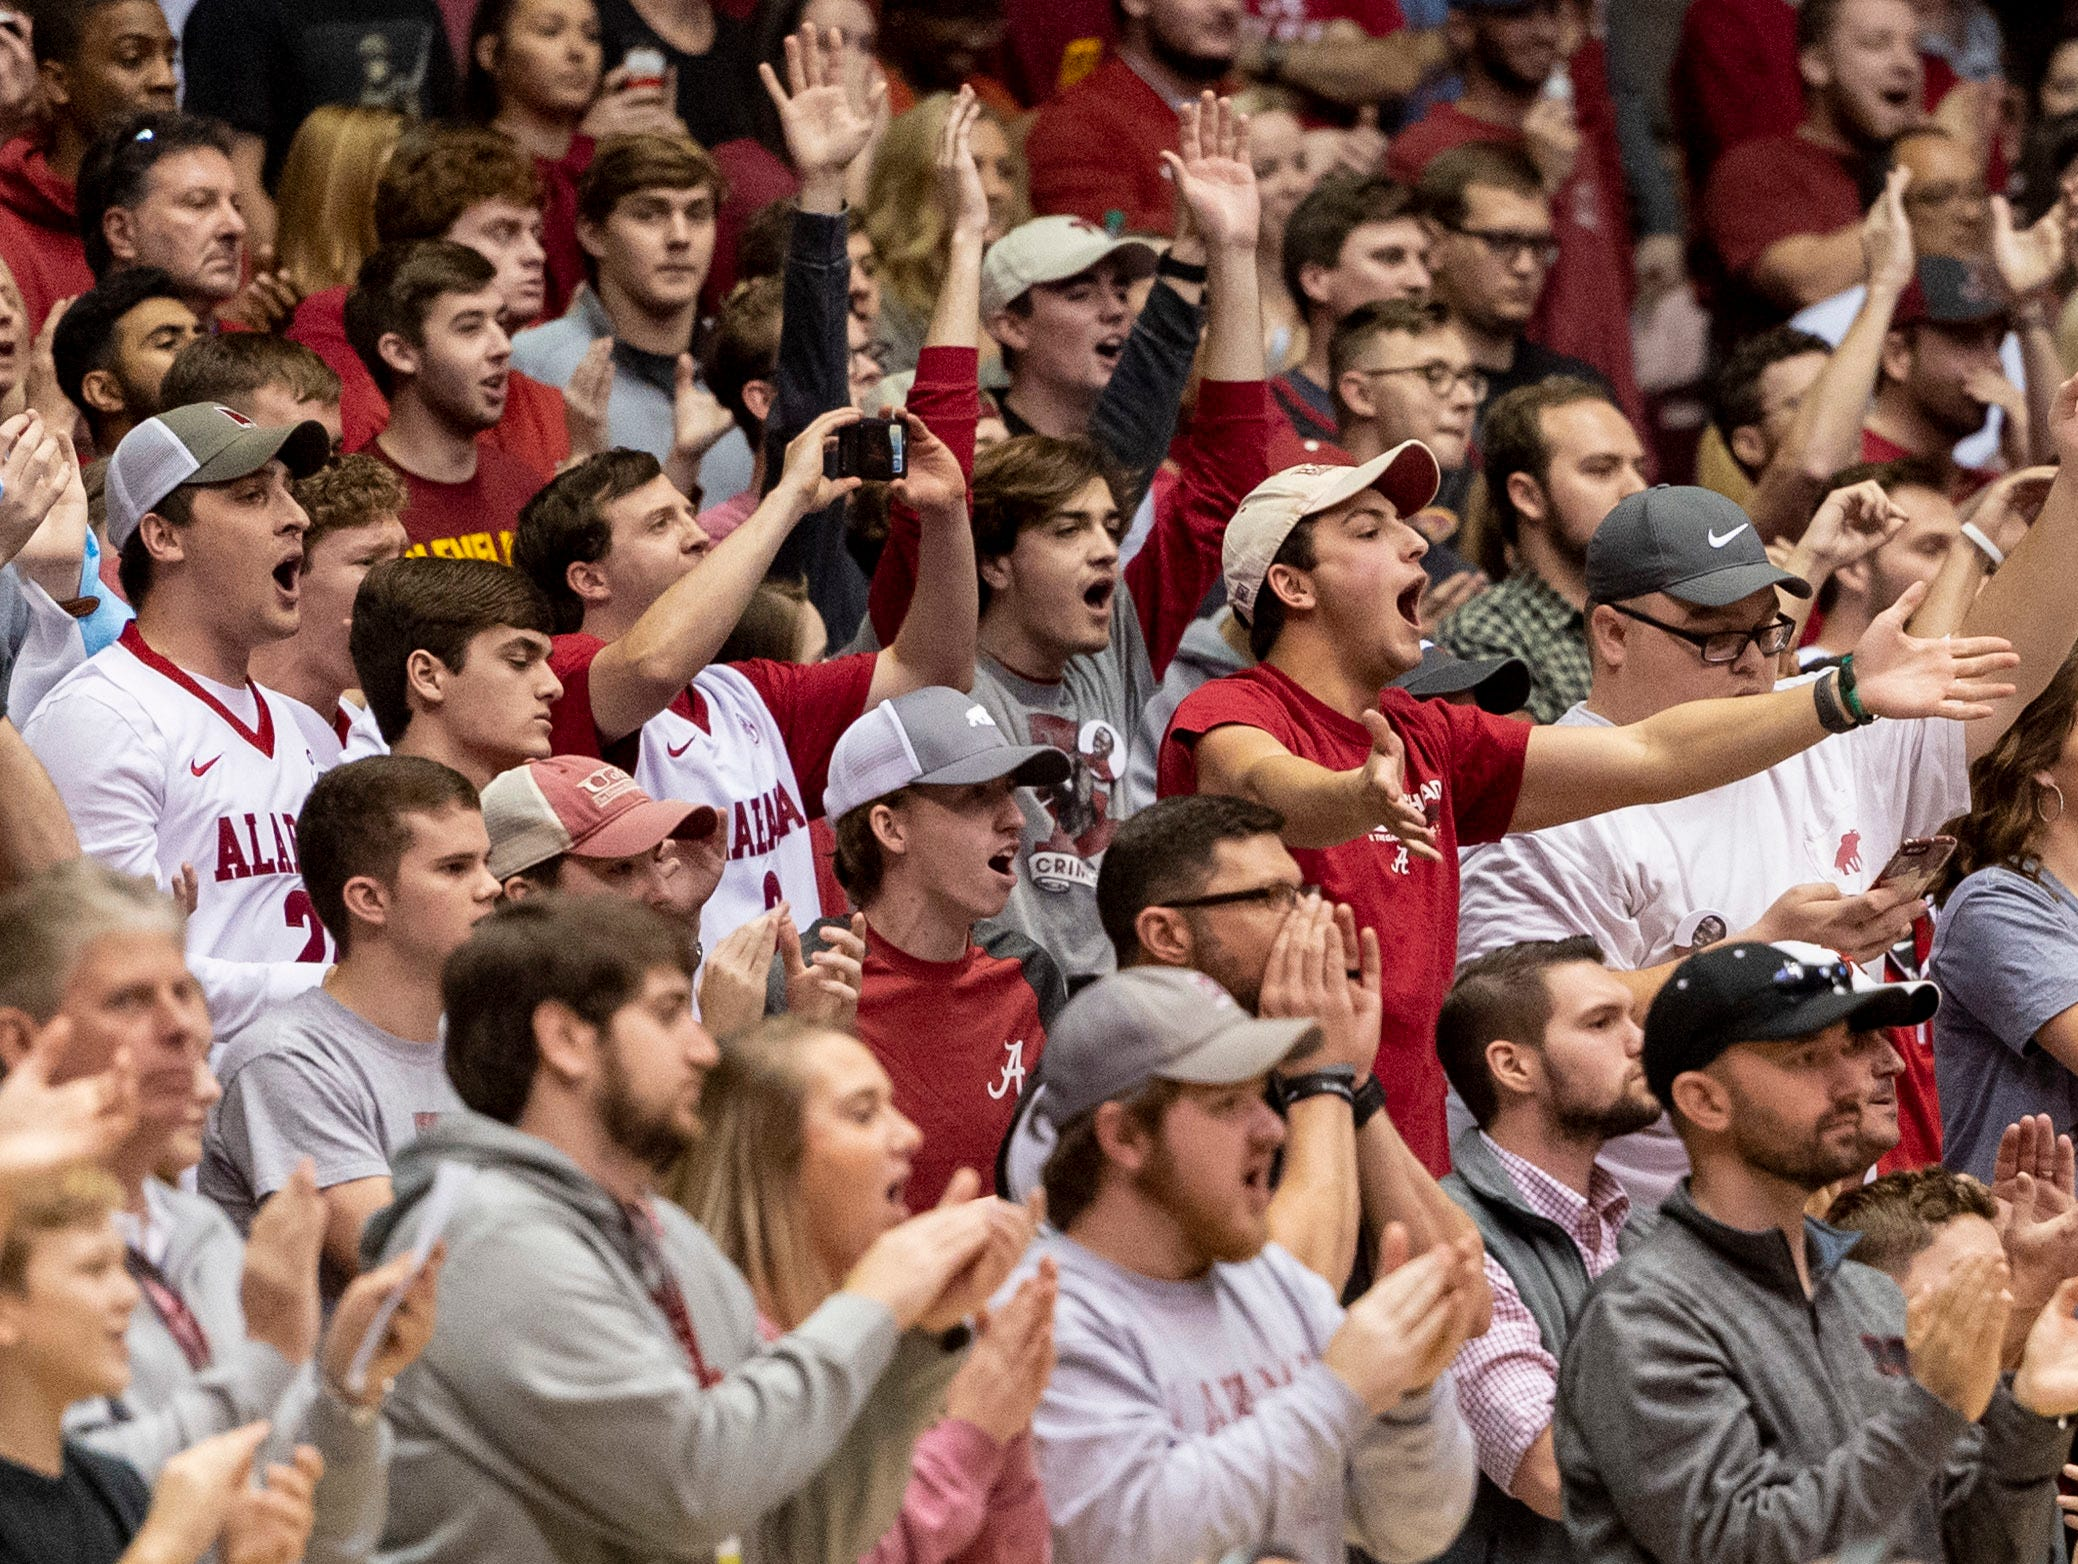 Alabama fans cheer in an upset win over Kentucky during the second half of an NCAA college basketball game, Saturday, Jan. 5, 2019, in Tuscaloosa, Ala.